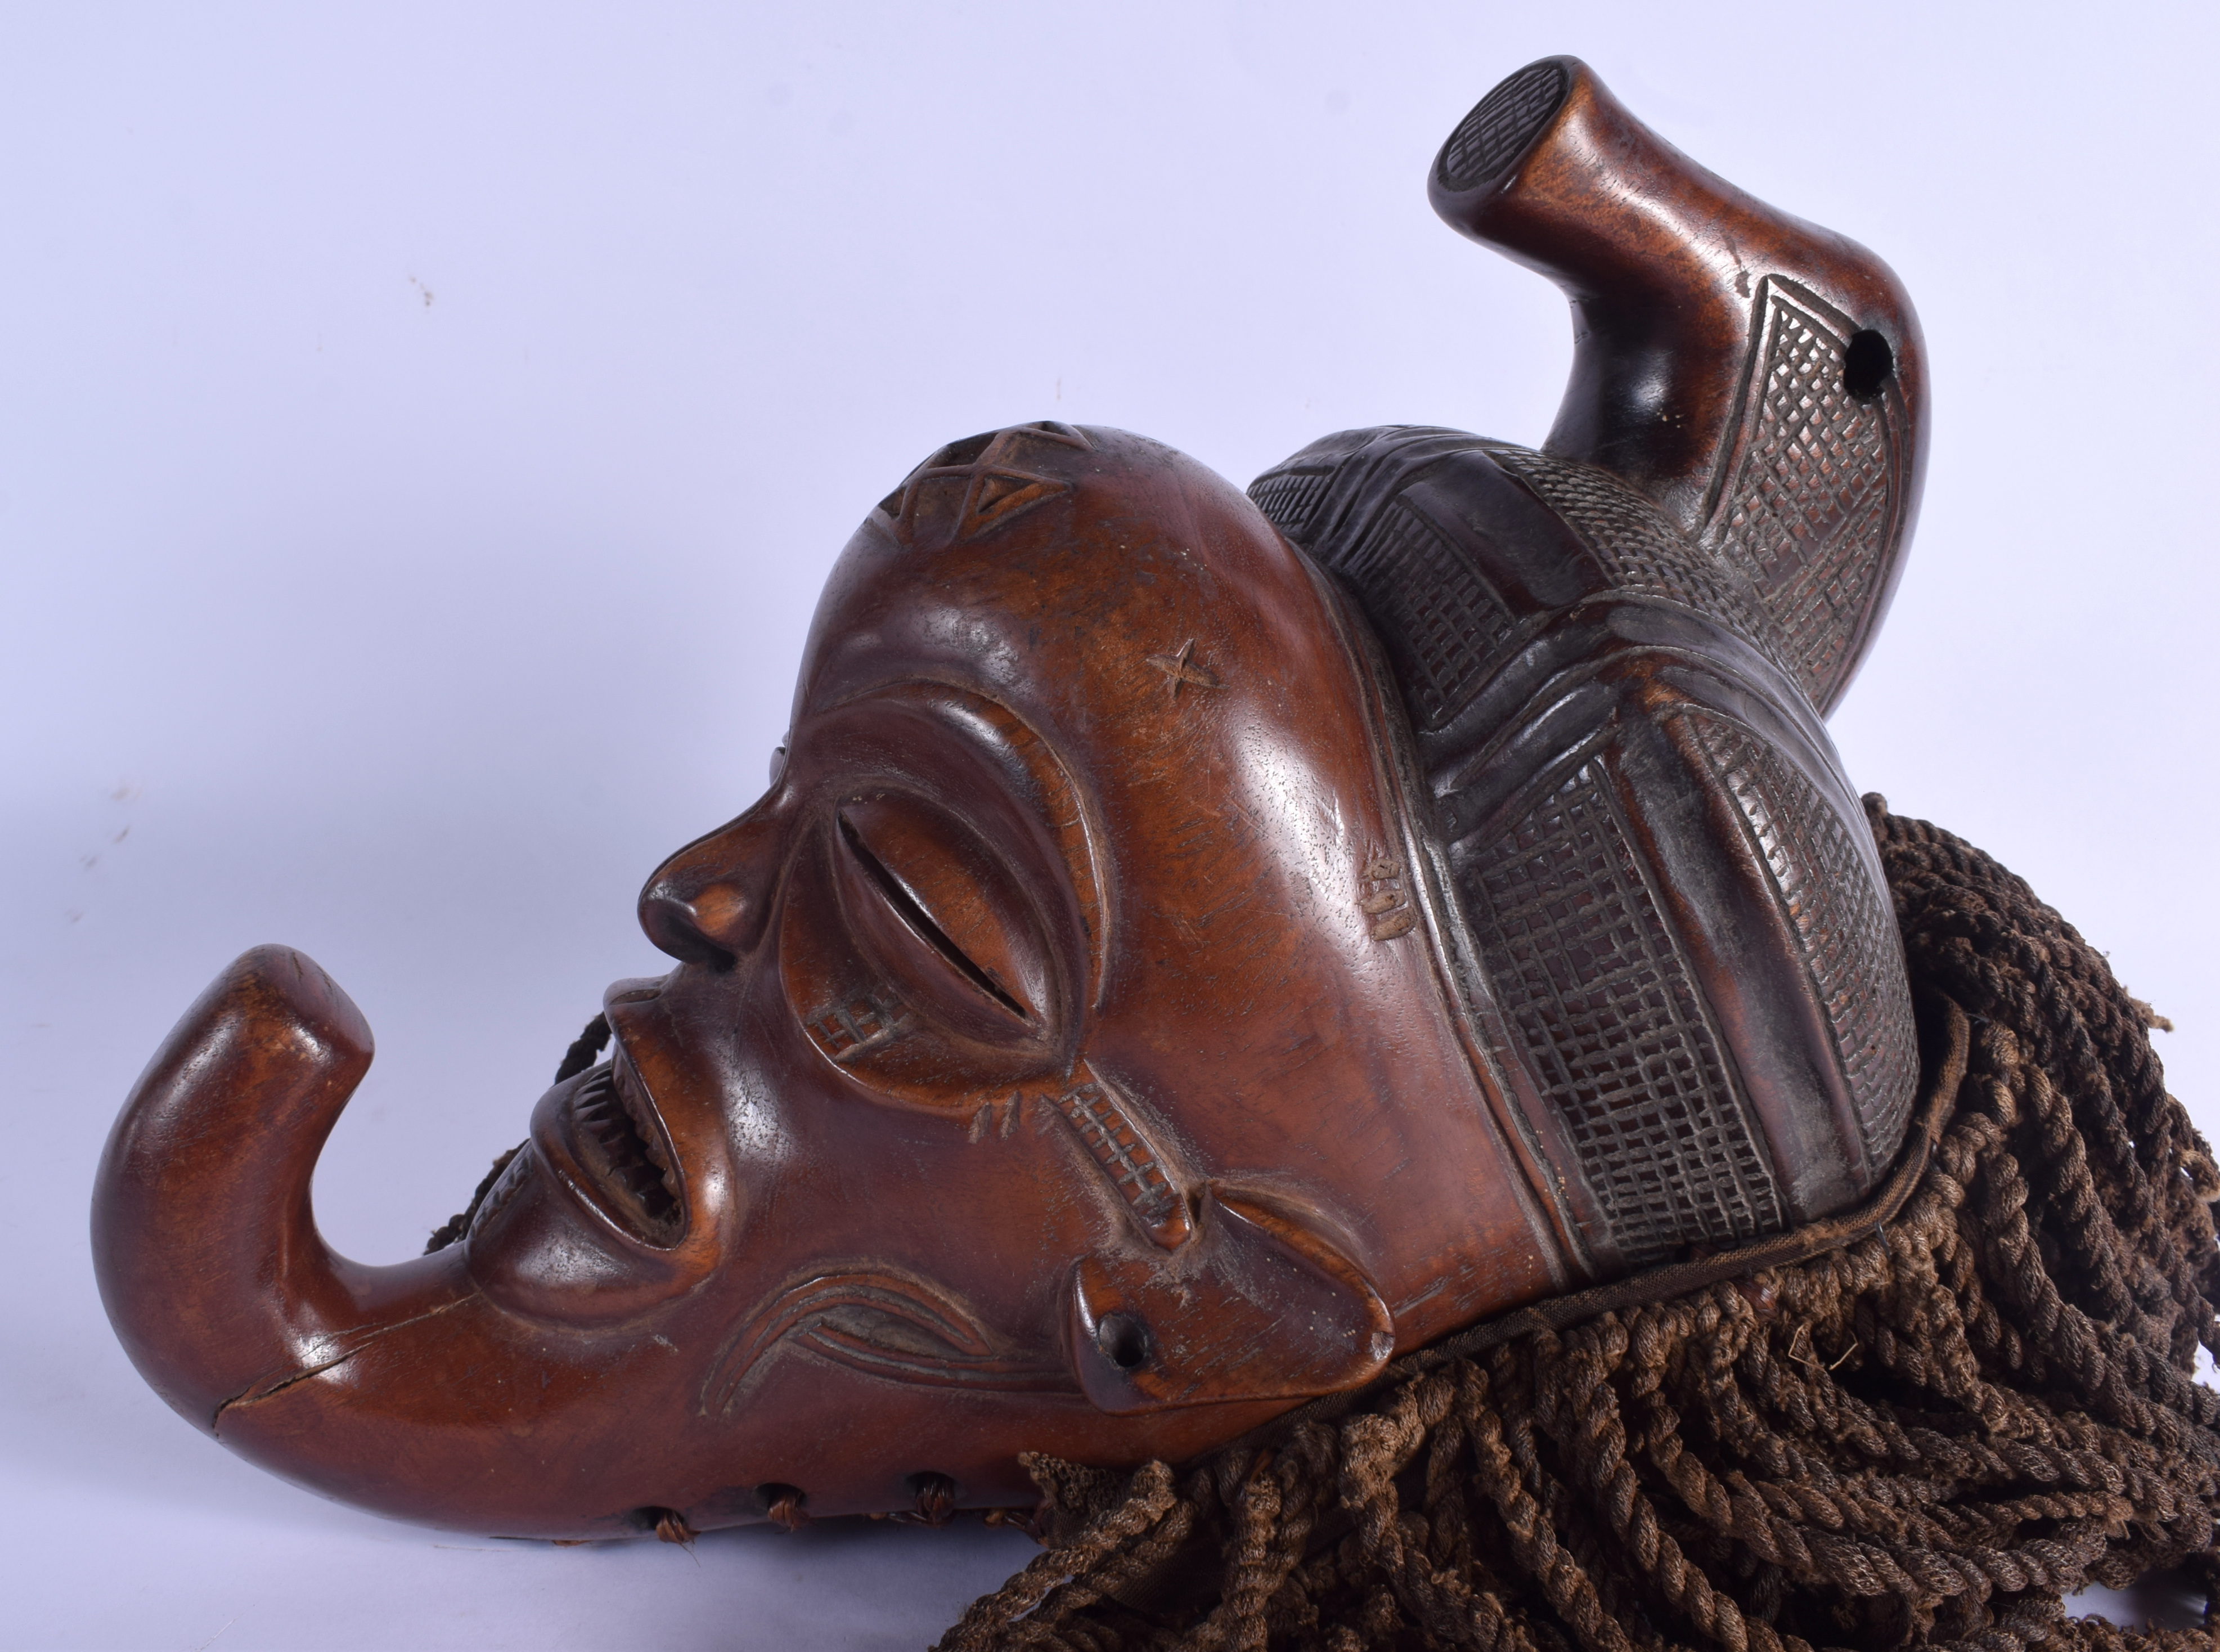 AN AFRICAN TRIBAL CHOKWE MASK decorated with motifs. Mask 30 cm x 14 cm. - Image 2 of 4